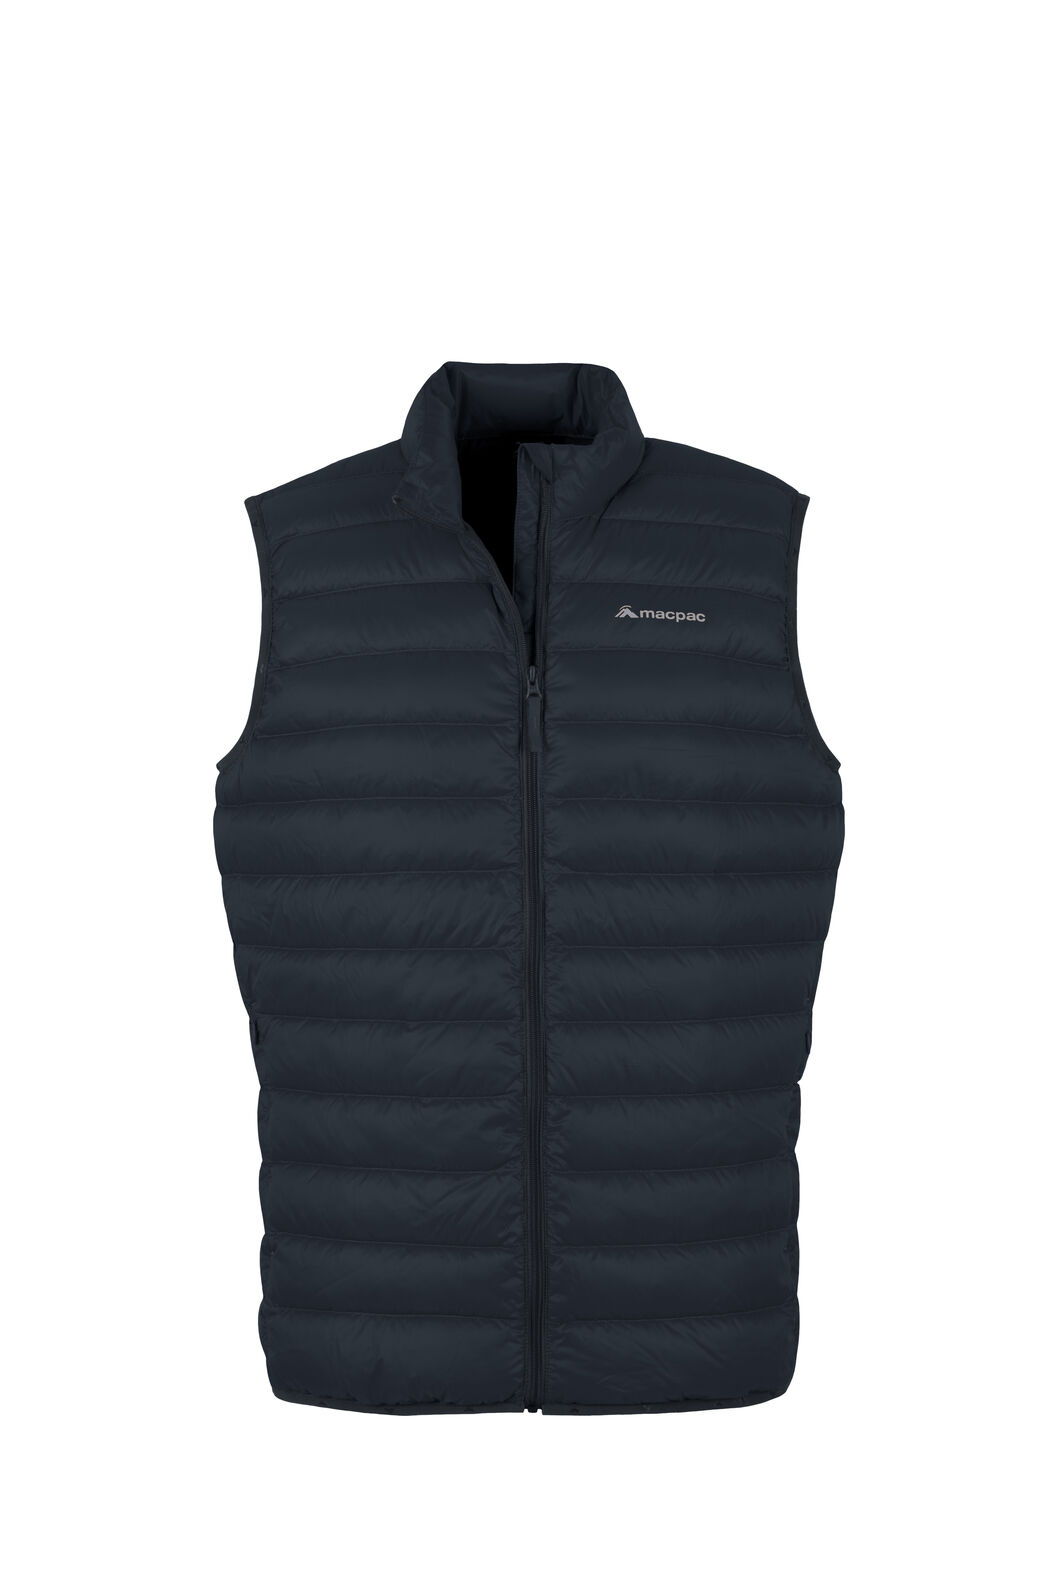 Macpac Uber Light Down Vest - Men's, Salute, hi-res